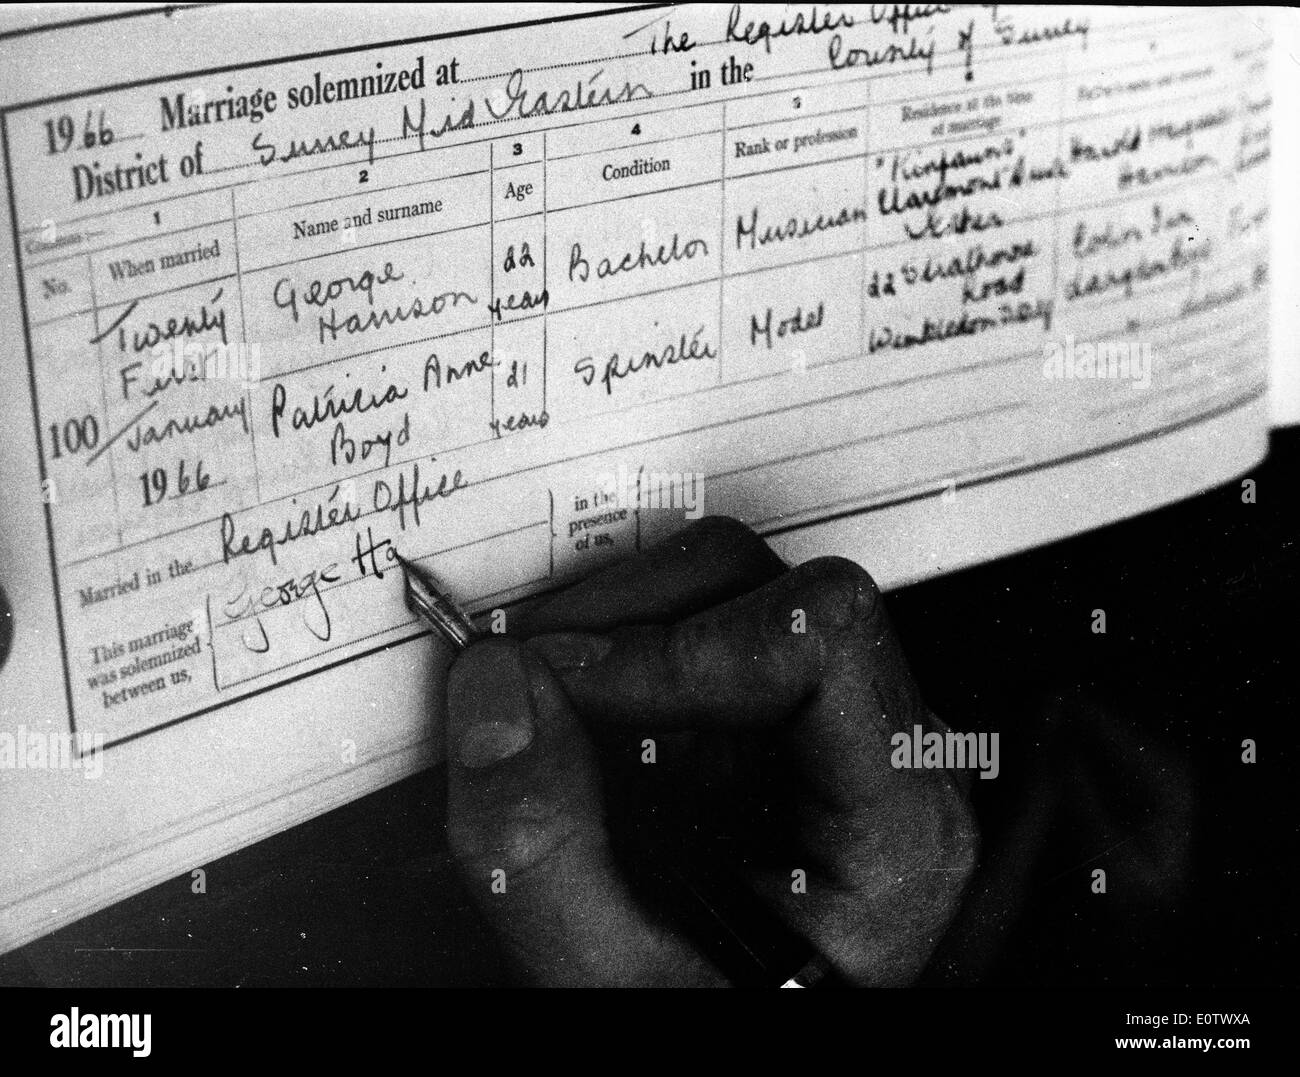 Beatle George Harrison signs marriage license - Stock Image